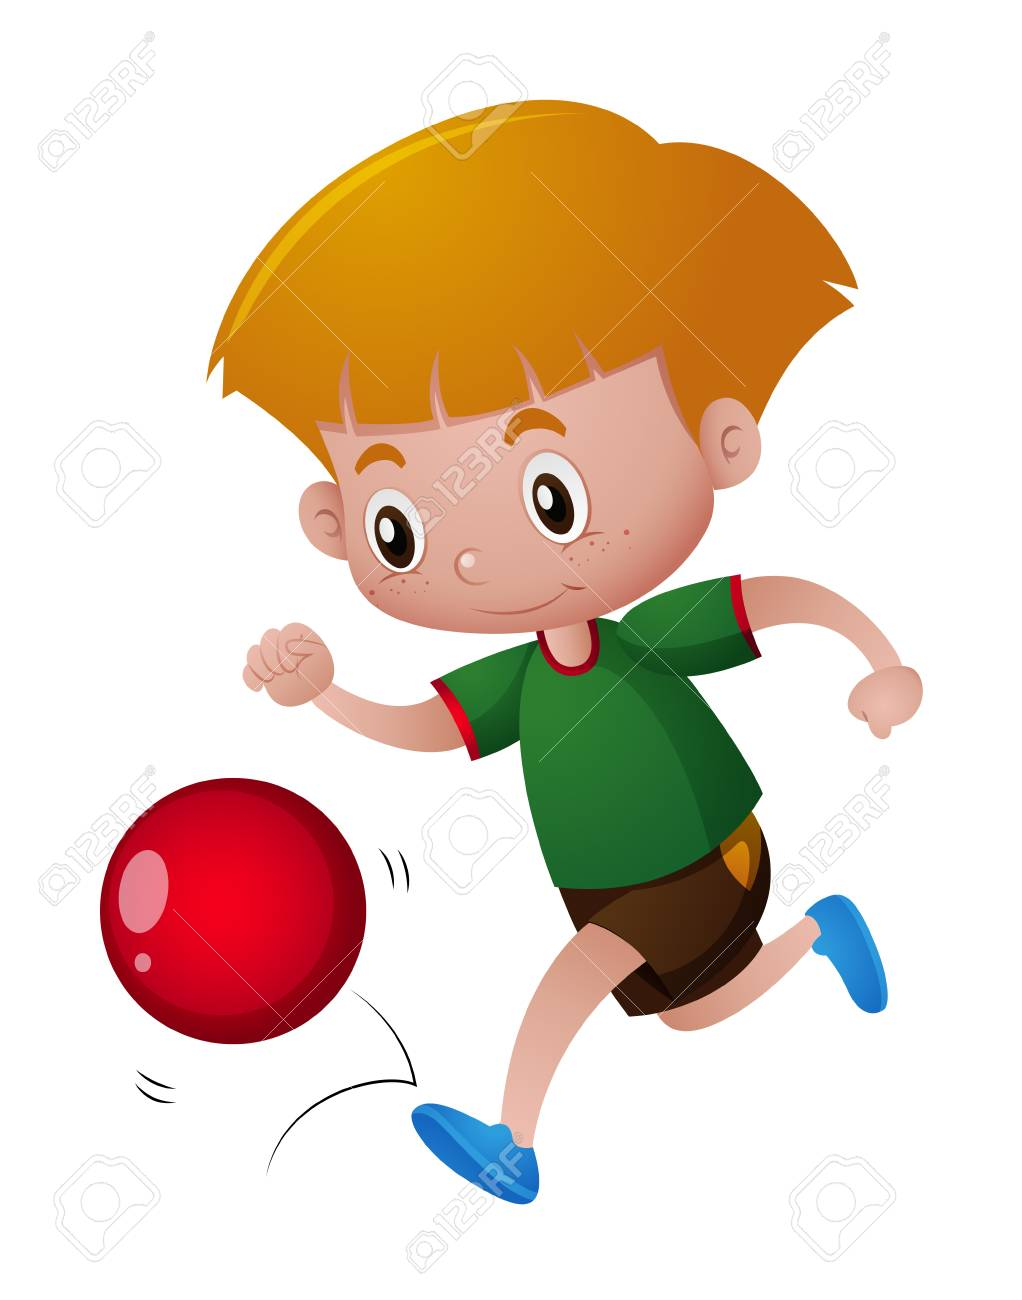 Boy playing with red ball illustration.